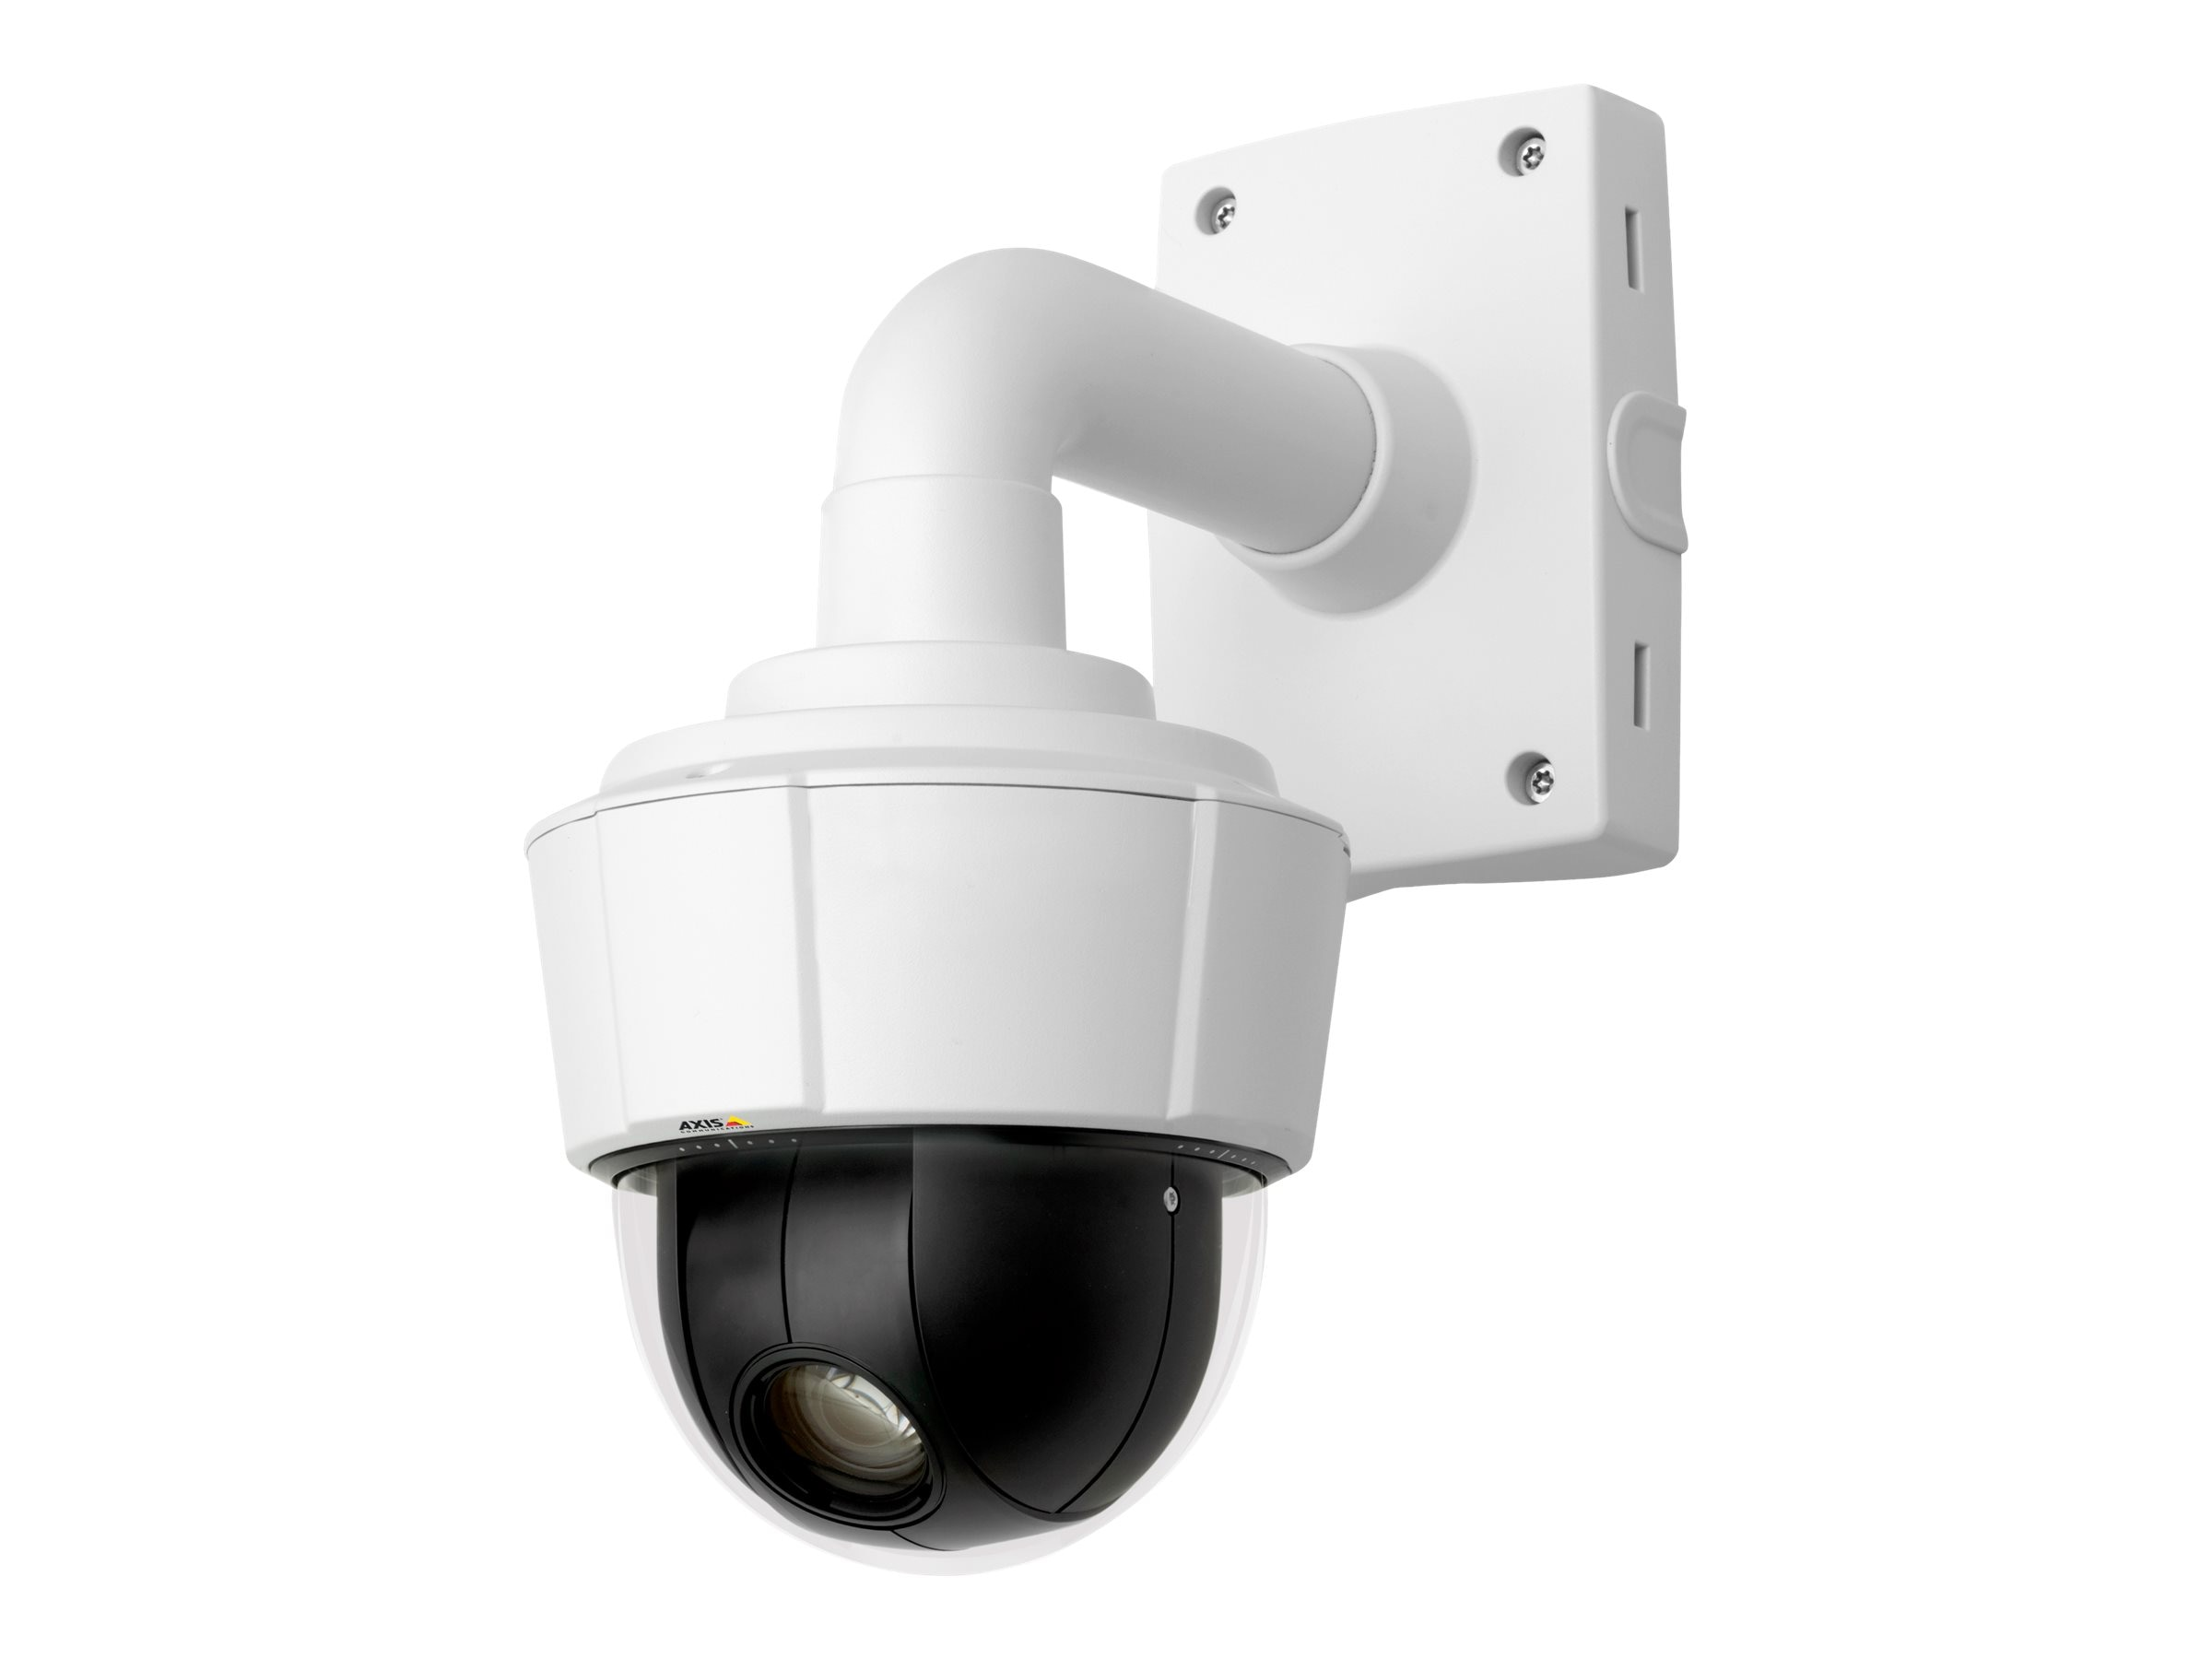 Axis P5522 PTZ Network Camera, 18x Zoom, 0420-004, 12924403, Cameras - Security